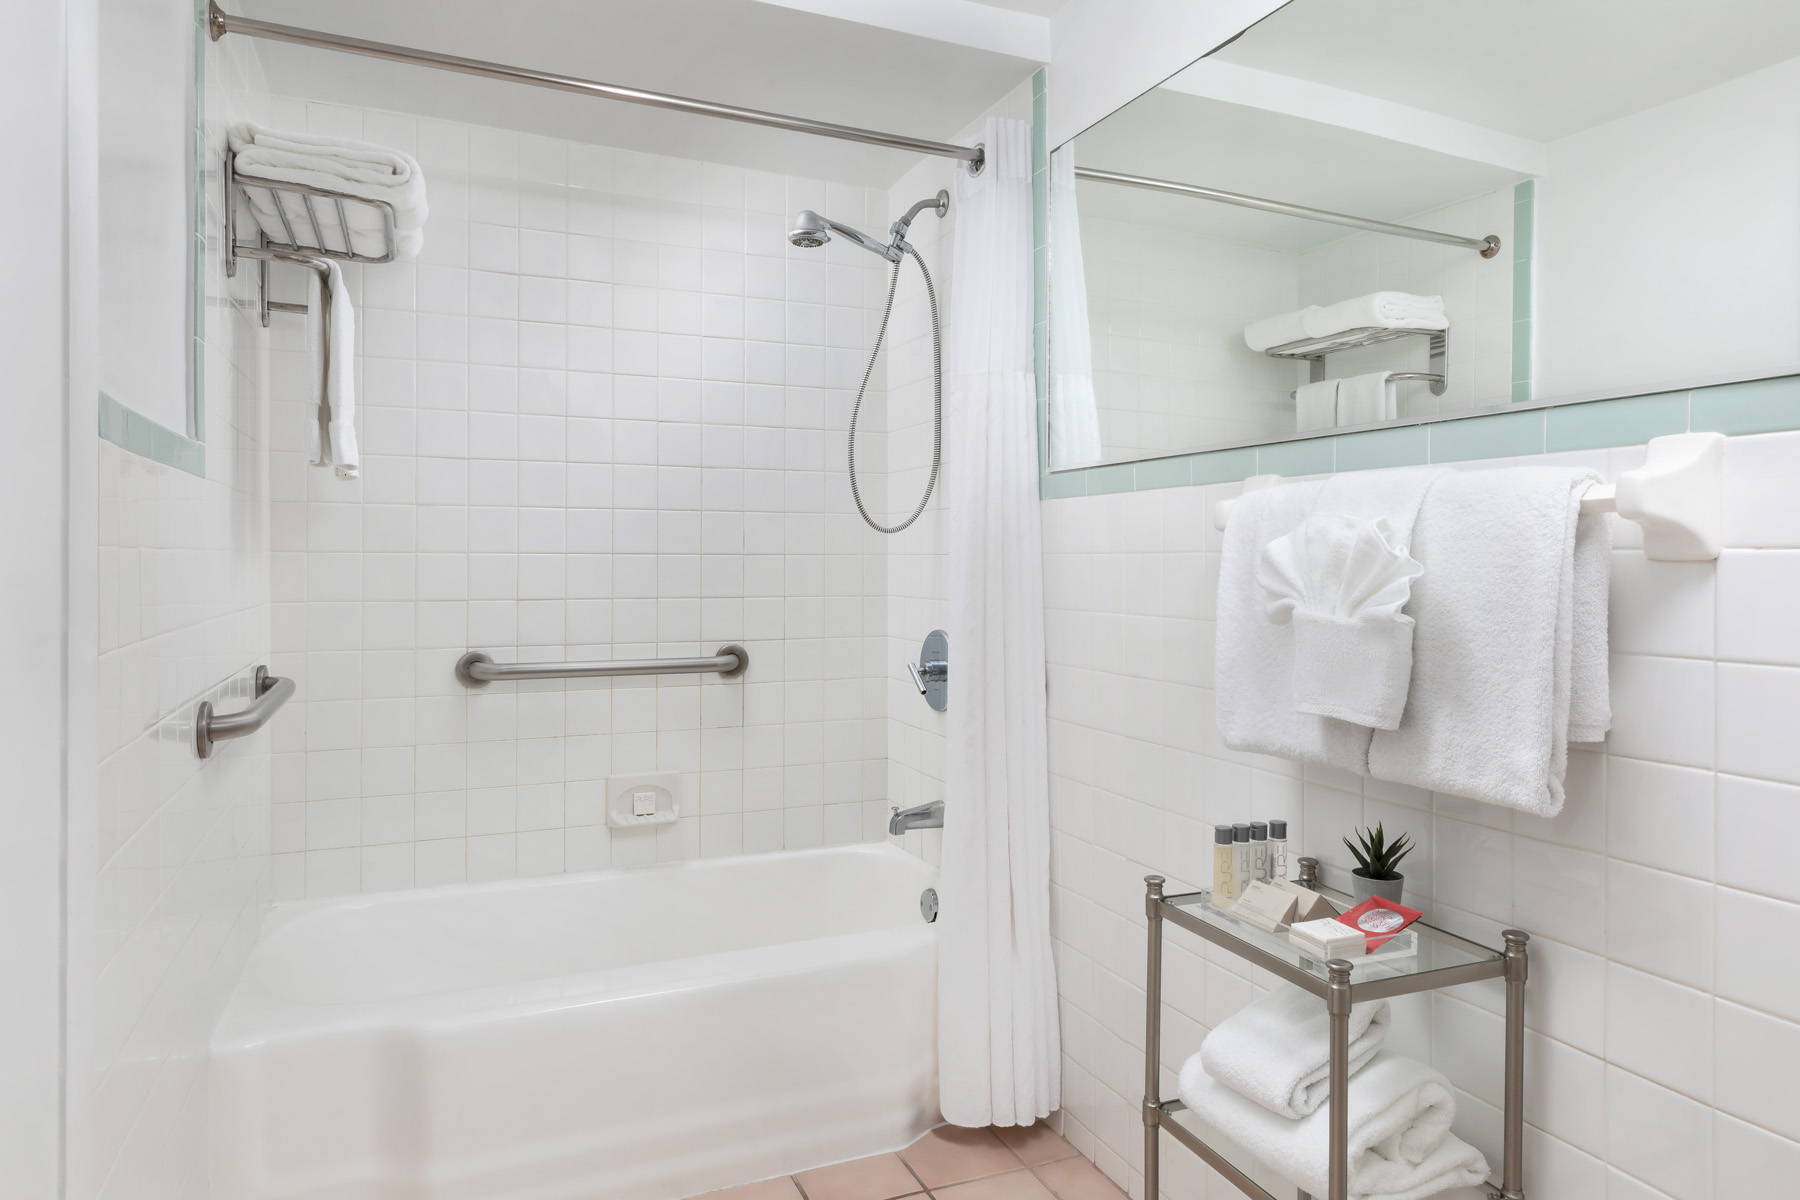 https://www.hotelsbyday.com/_data/default-hotel_image/2/13953/south-seas-bath-ada-sm.jpg